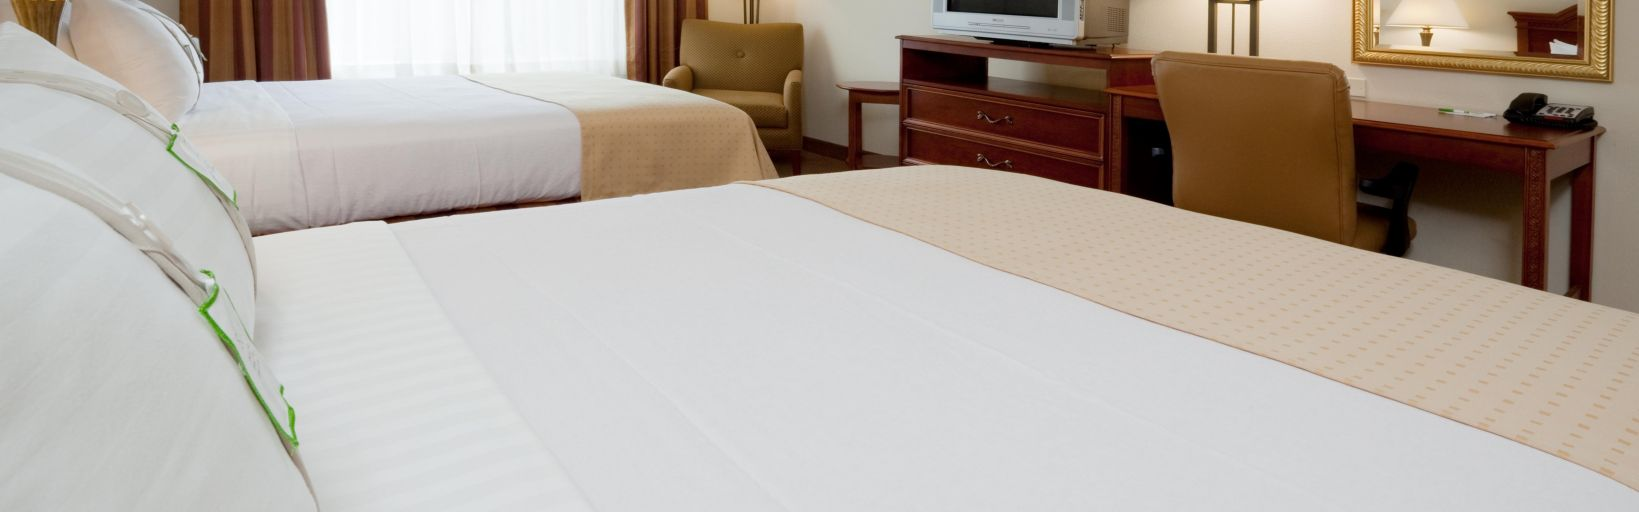 Holiday Inn Raleigh-Durham Airport - Room Pictures & Amenities